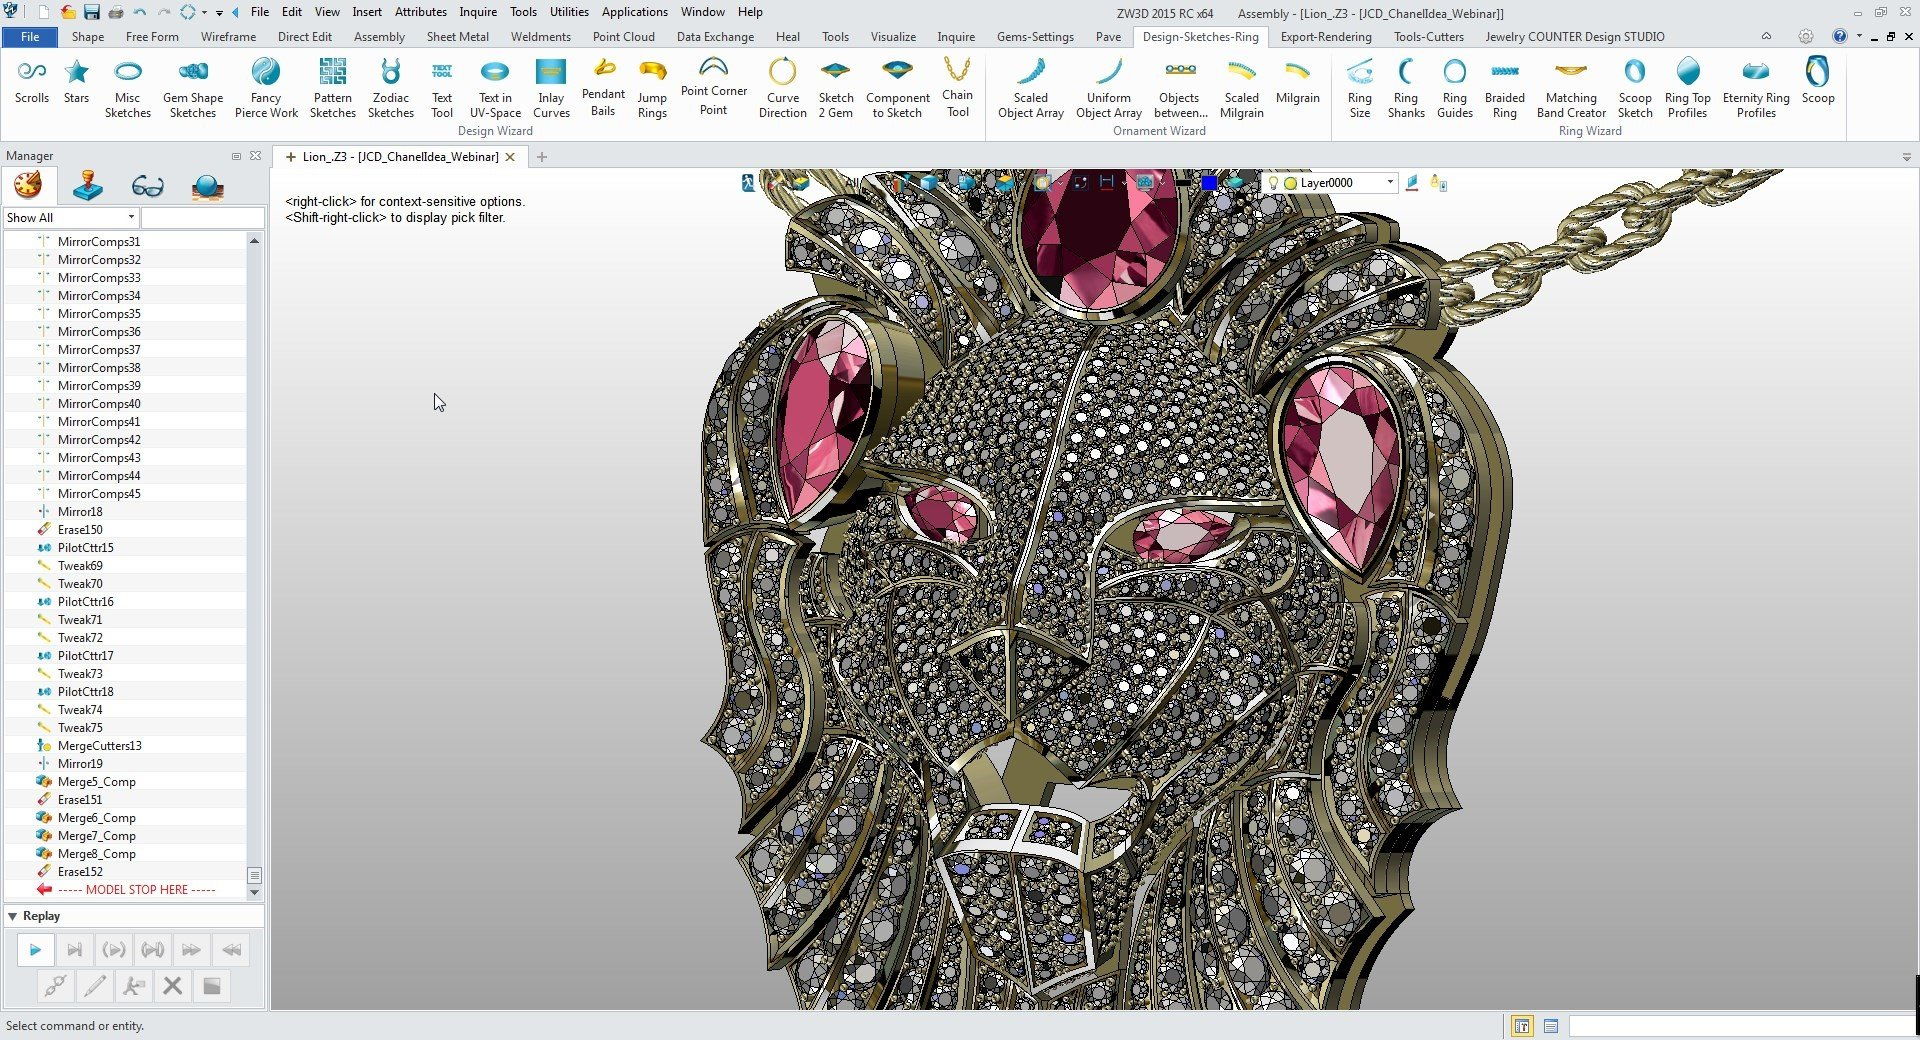 It's possible to update the information on Jewelry CAD Dream or report it as discontinued, duplicated or spam.